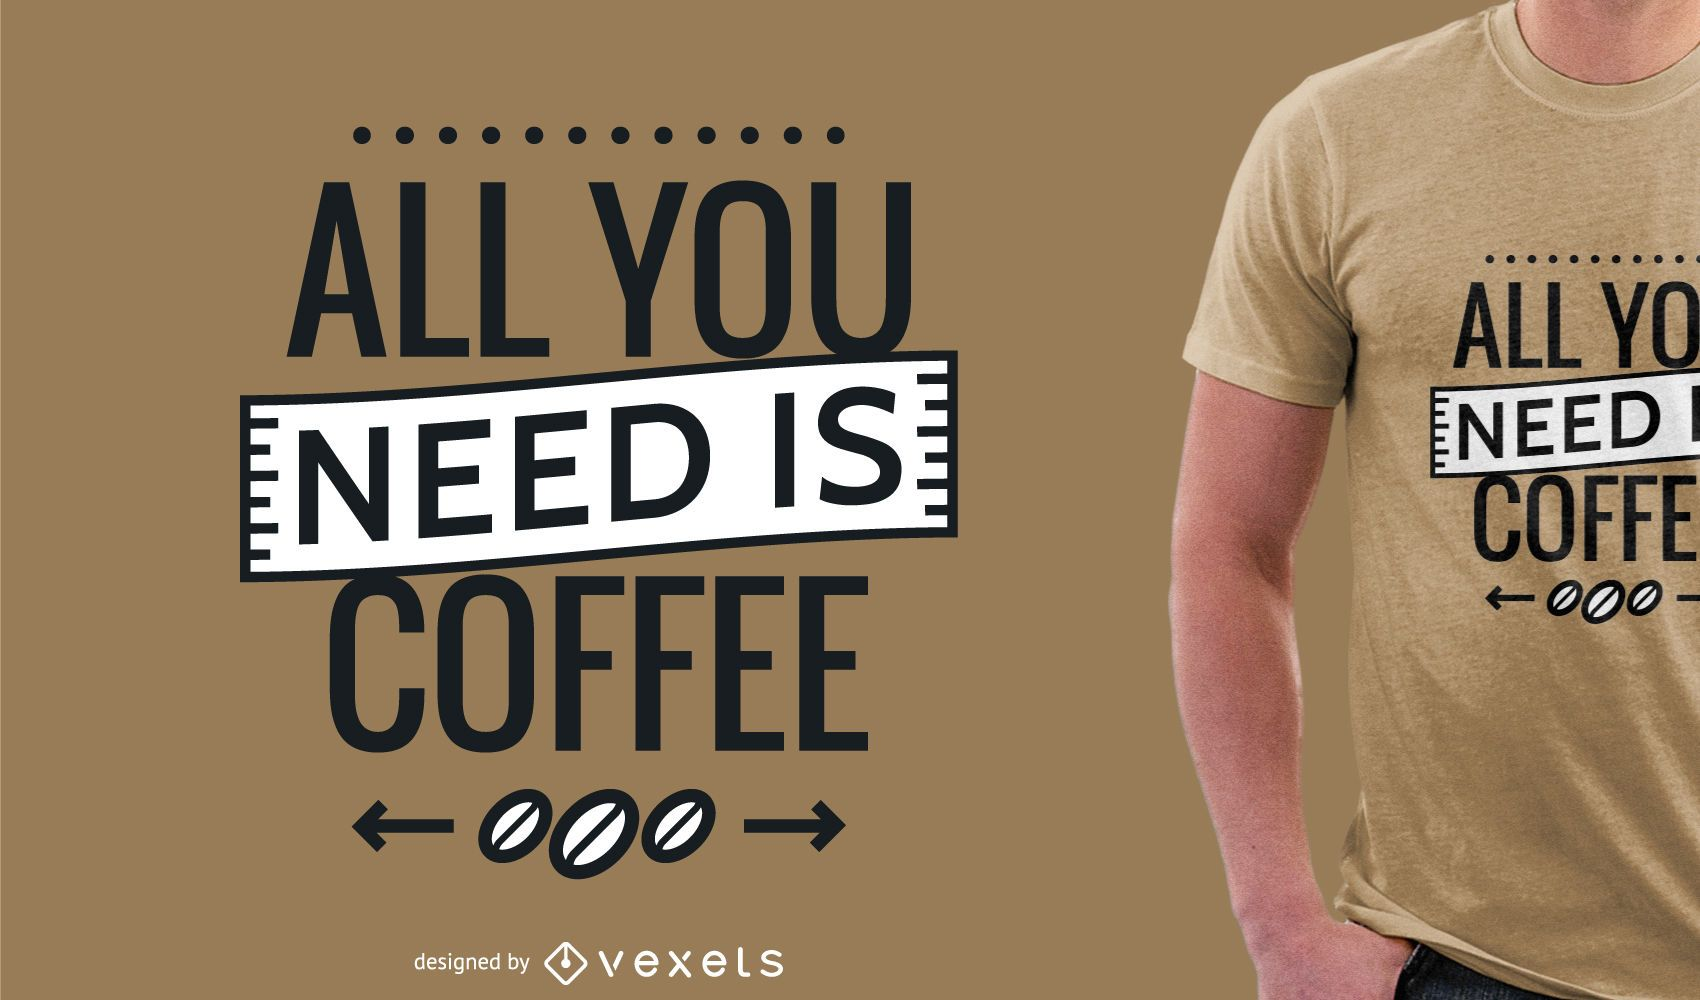 All you need is coffee tshirt design